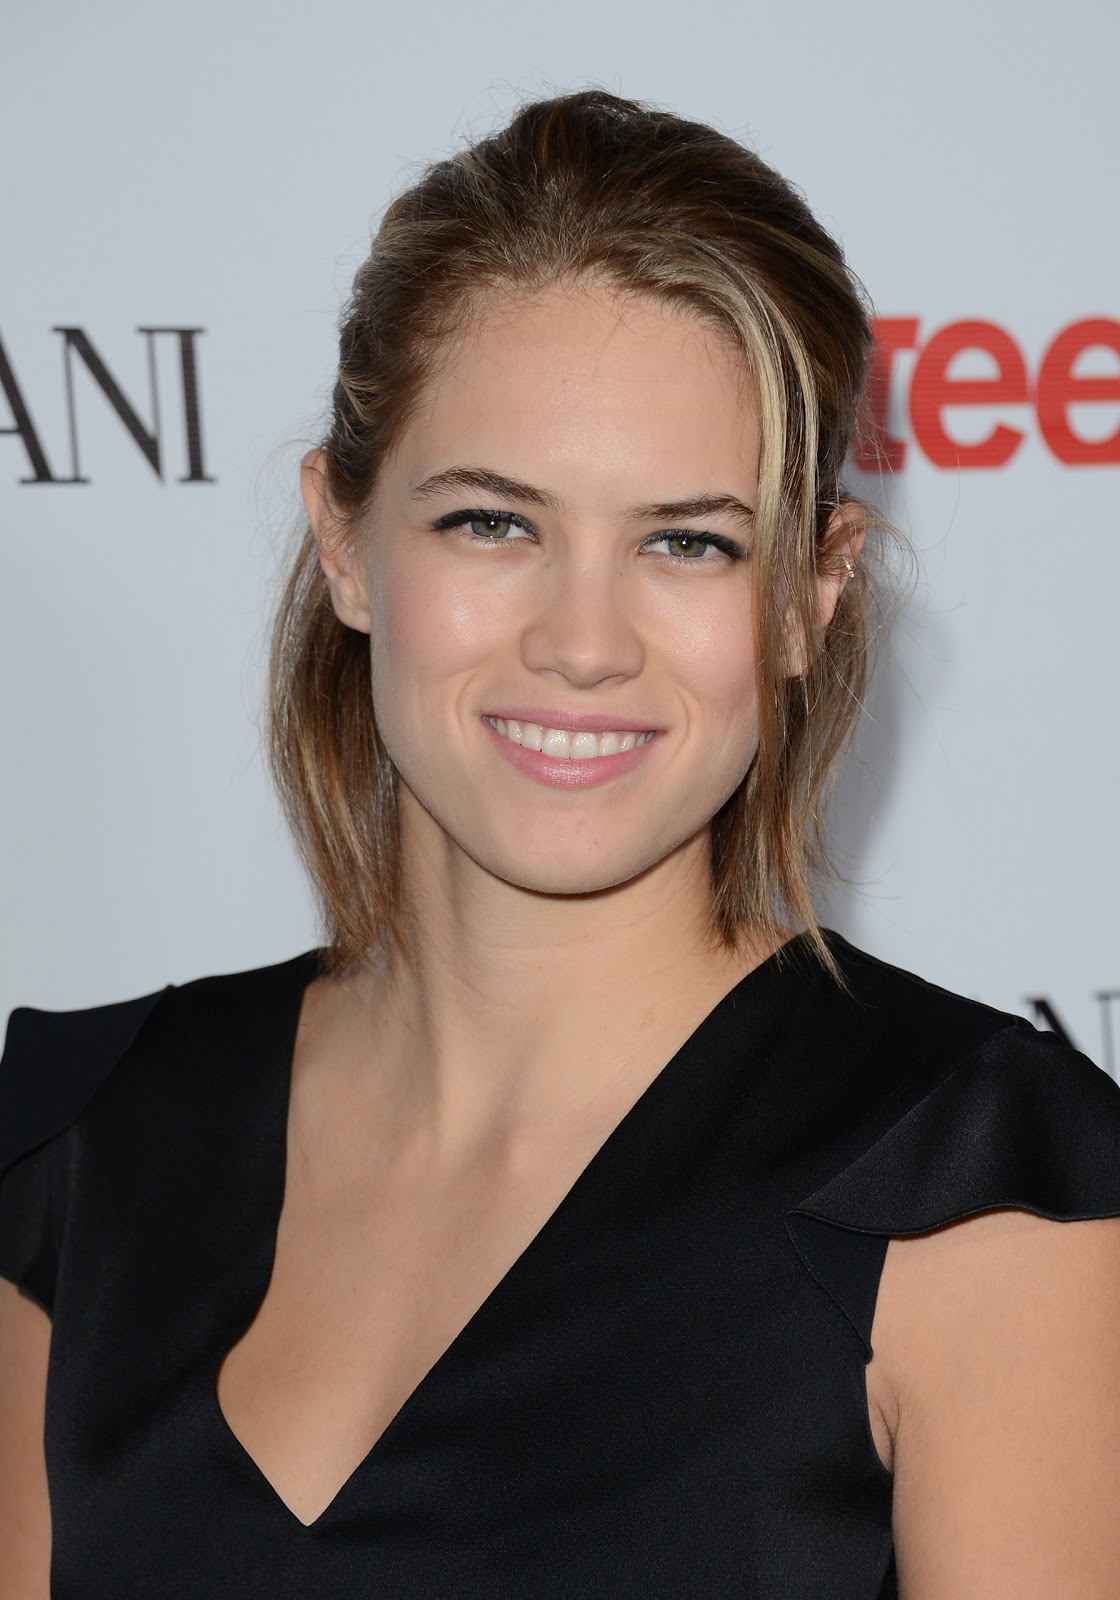 The Humorous Cast Of The Office In Real Life |Cody Horn The Office